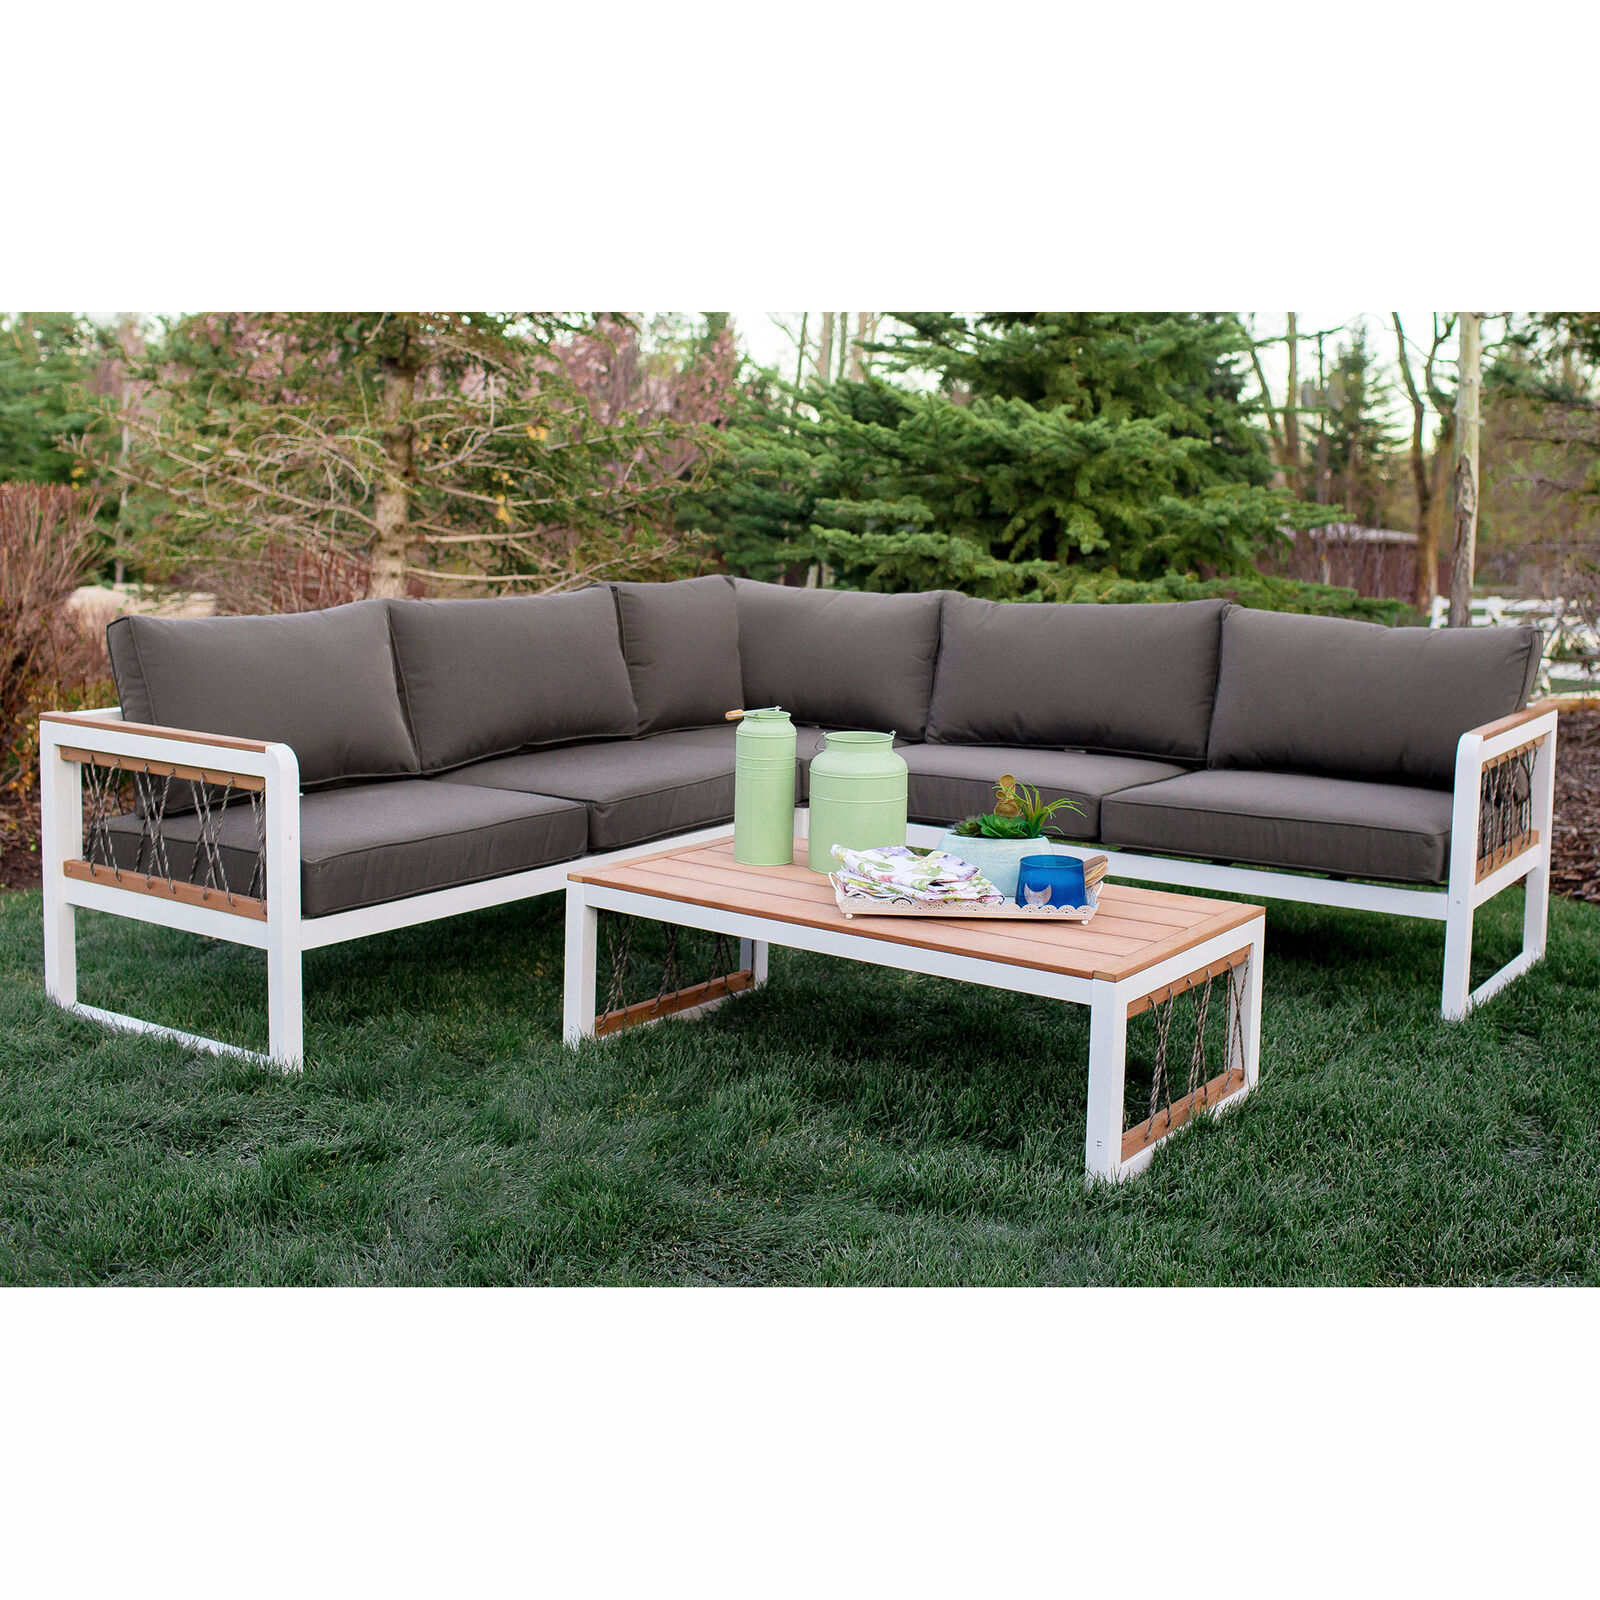 Walker Edison Oaw4scrpwg 4 Piece Outdoor Sectional With Cord Accents